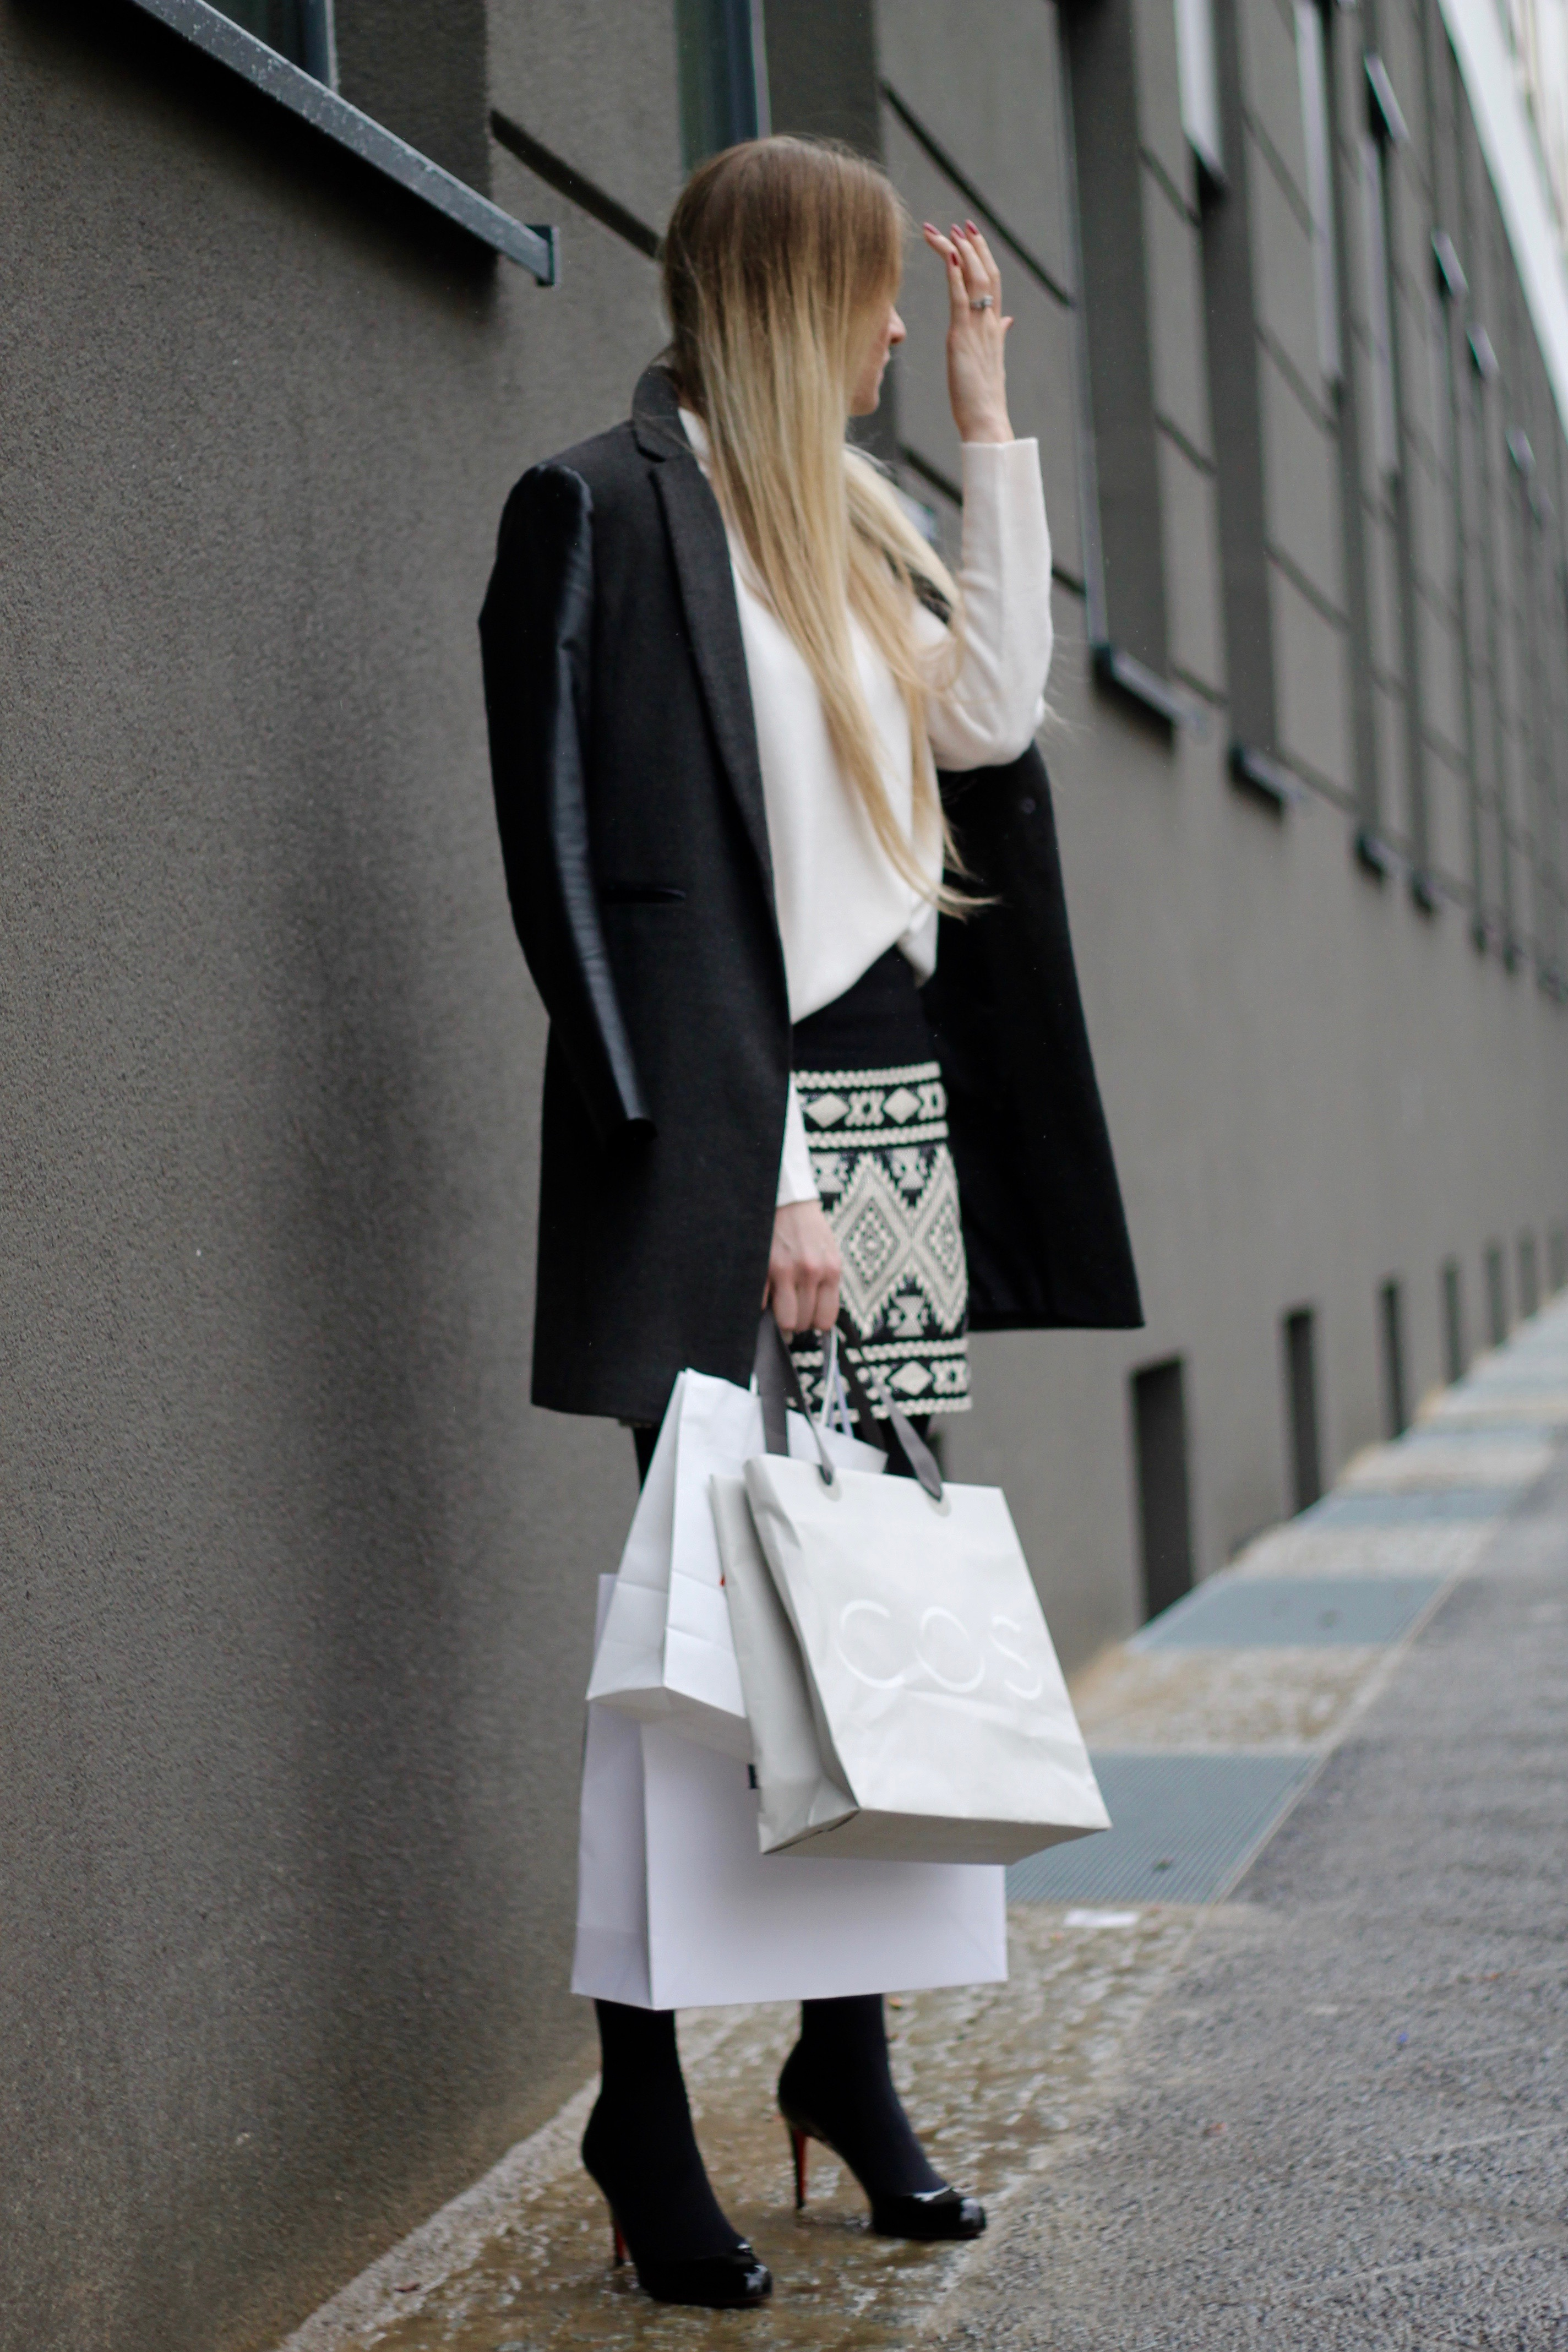 MonMode, Mon Mode, Fashionblogger, Favorite Moments, Berlin, Chanel Boy, Fashion Week